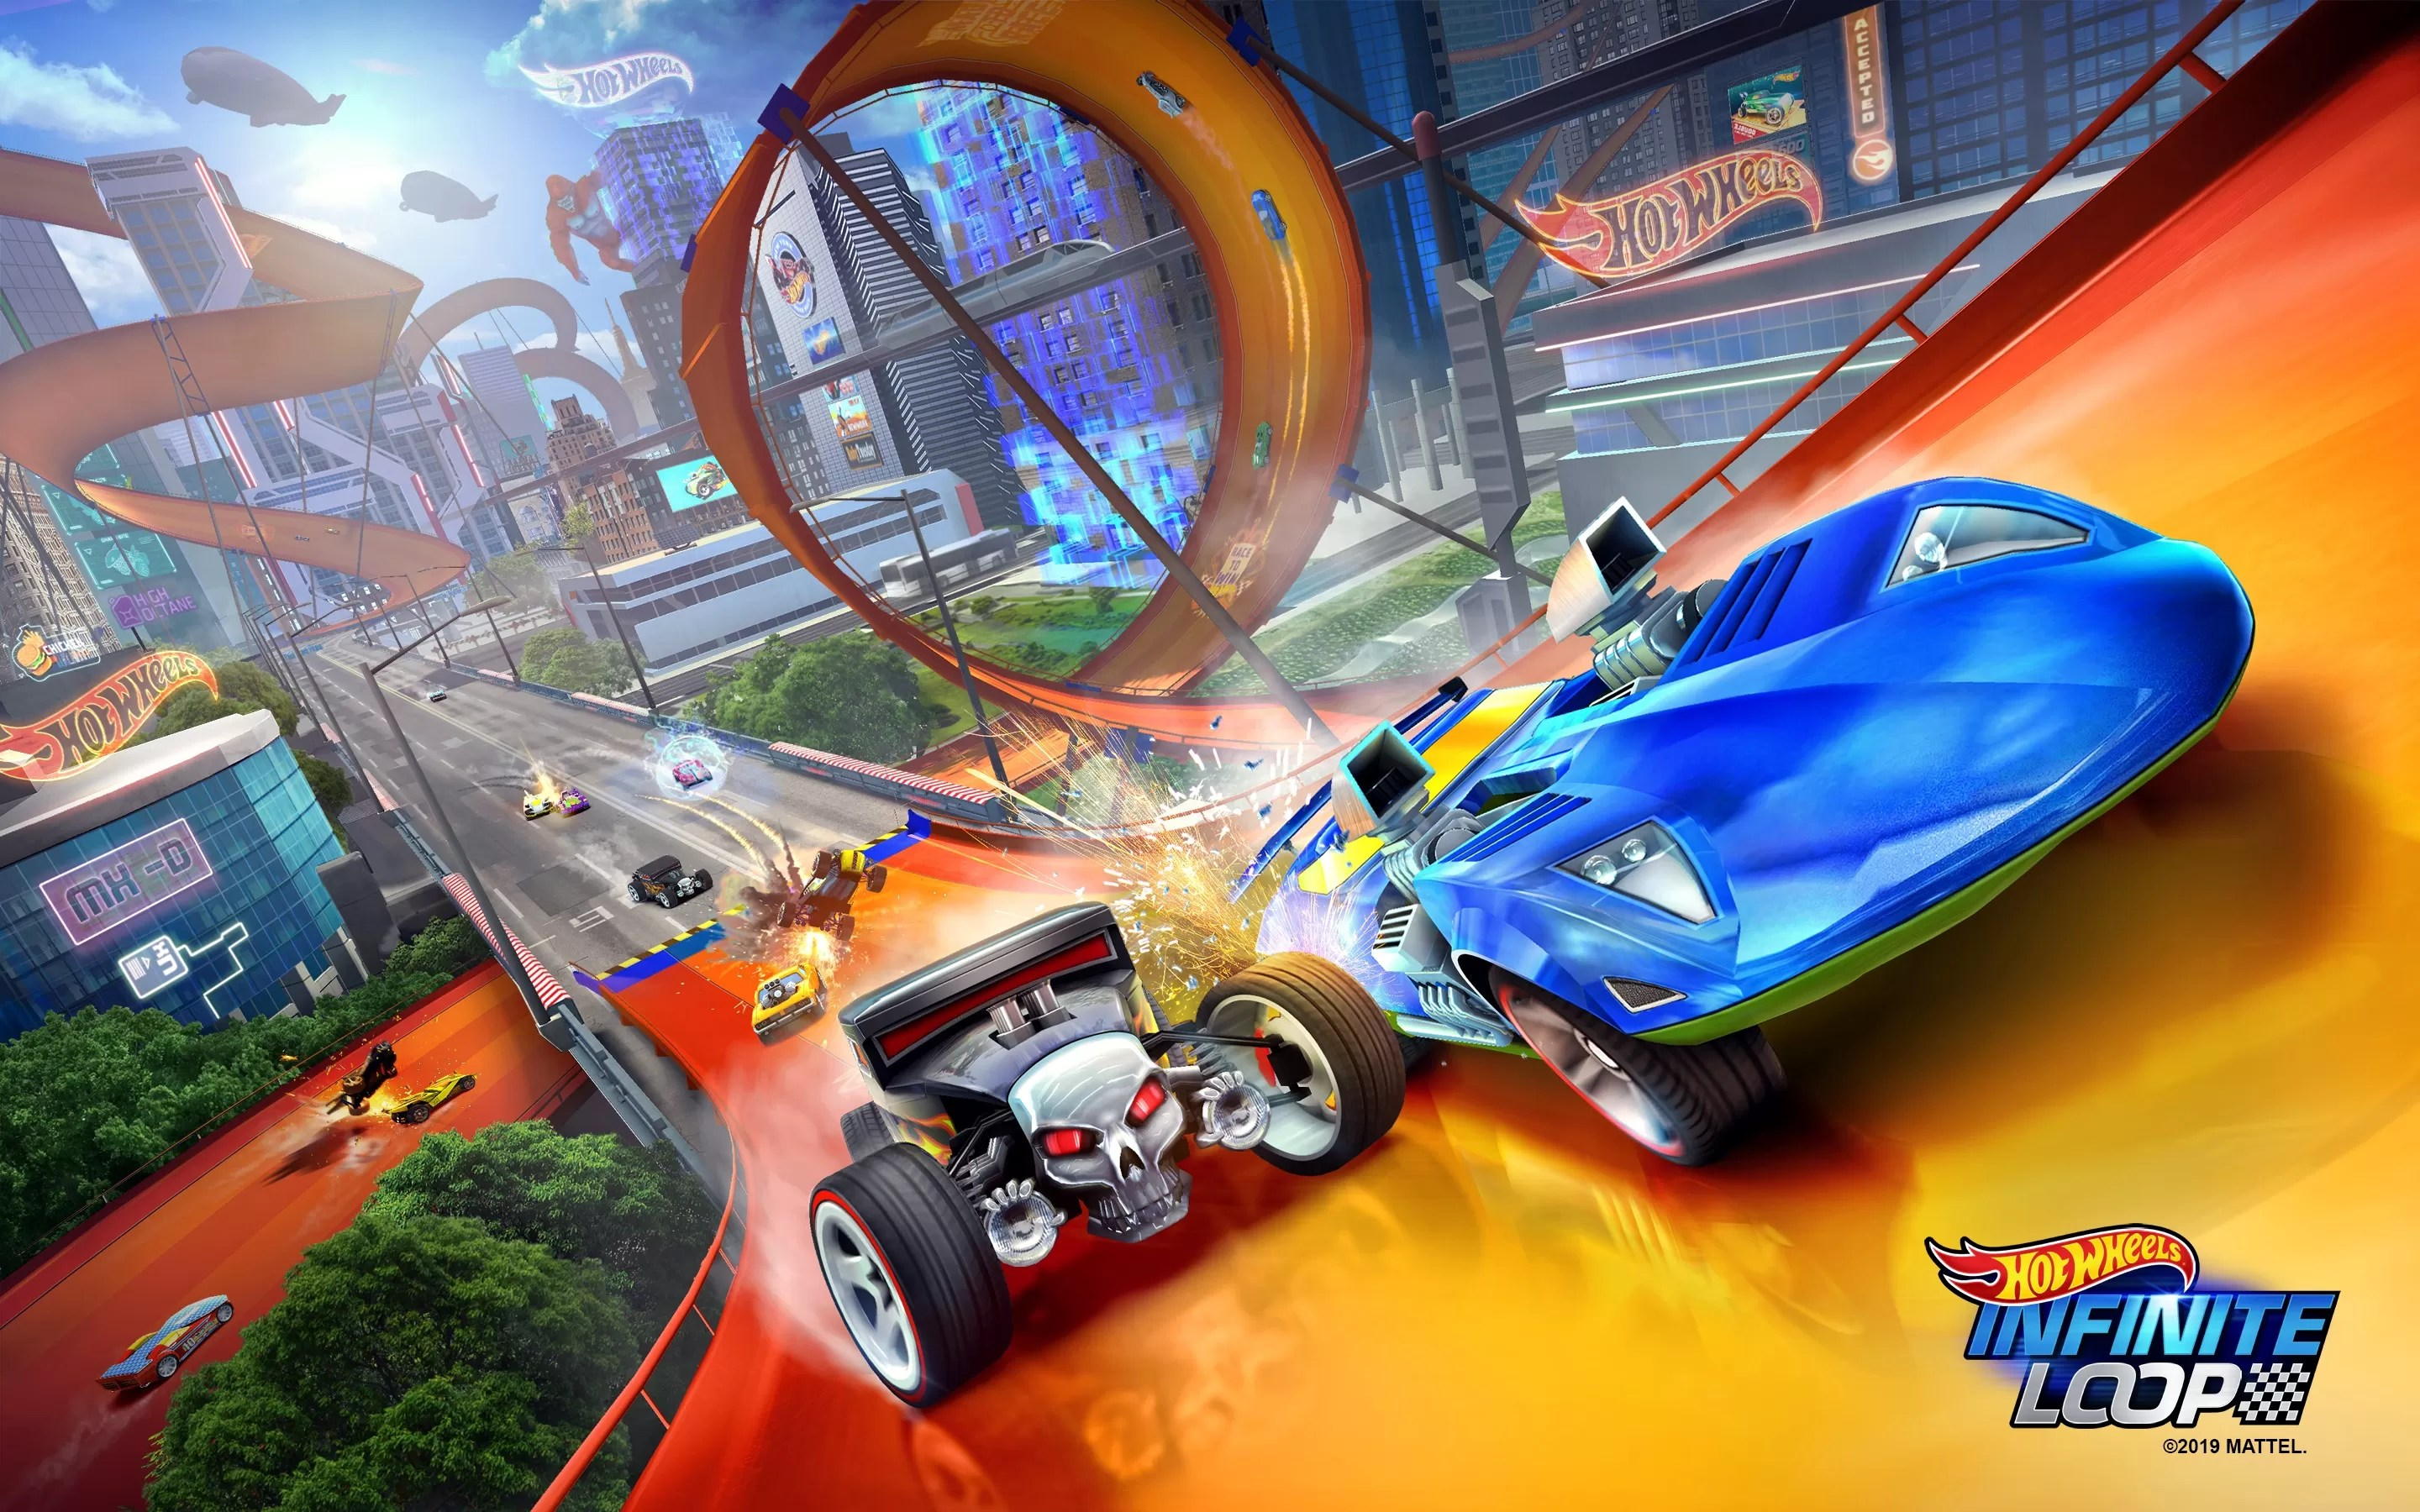 Vehicle Simulator Roblox Codes October 2020 Mattel Is Bringing Hot Wheels Updates To Four Games Including Roblox